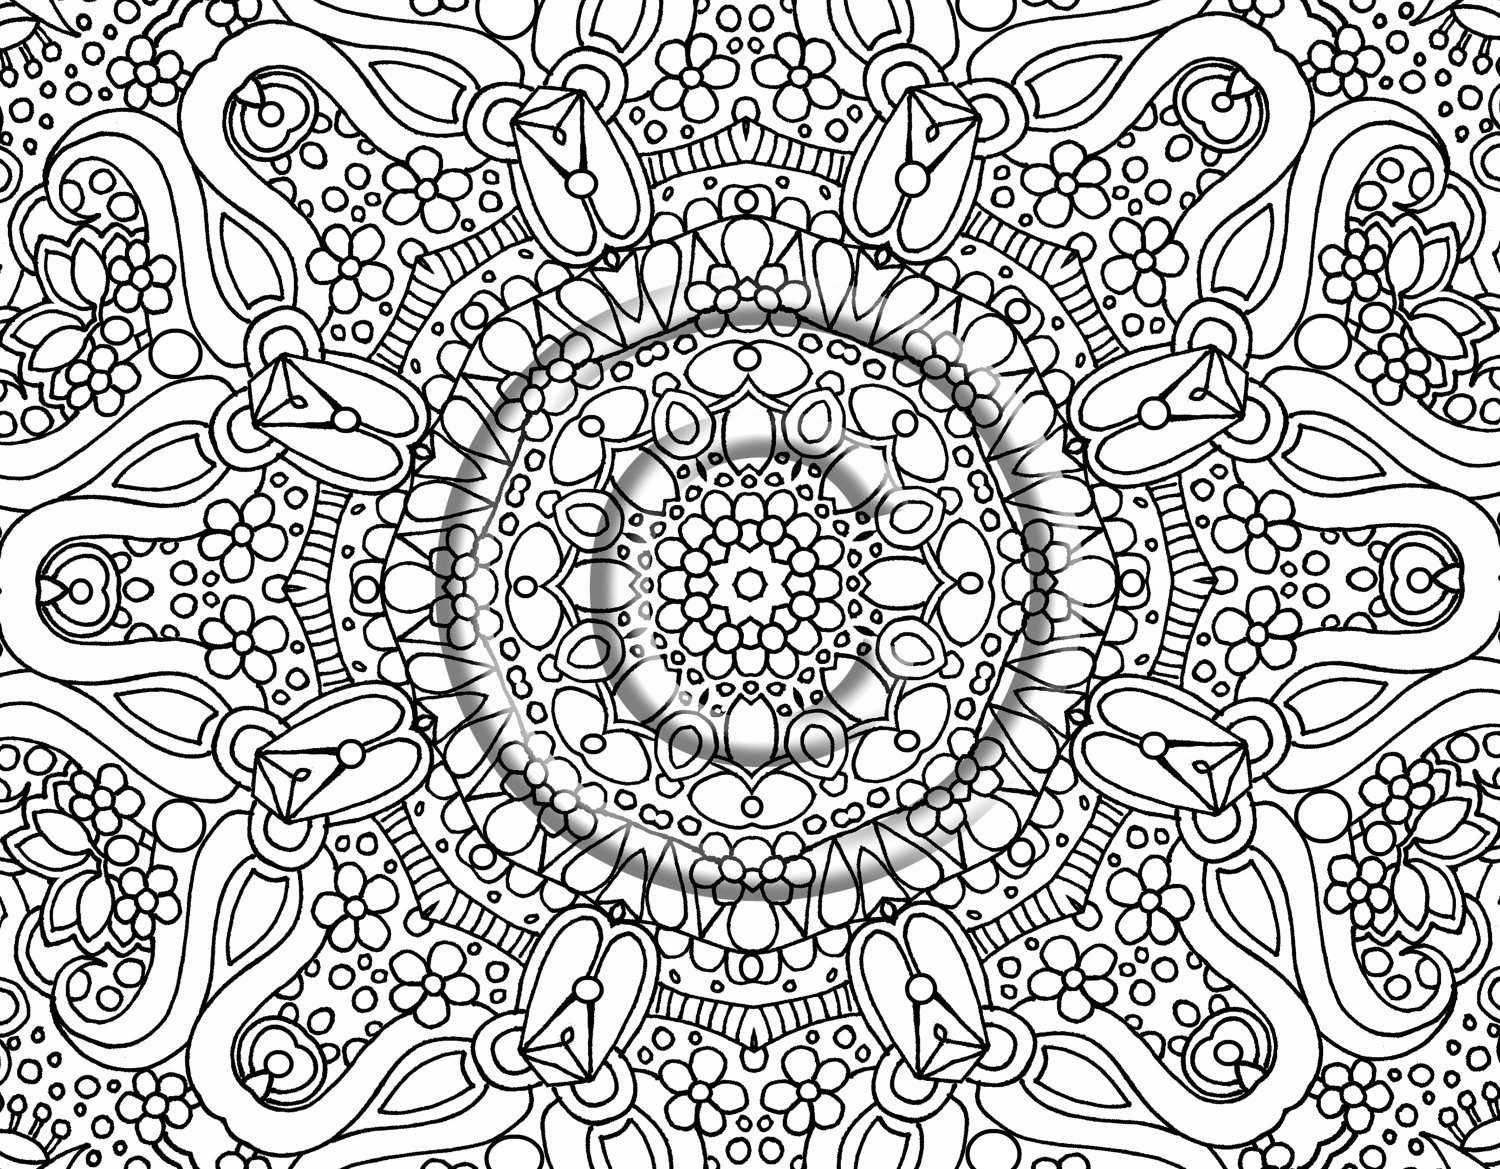 cool abstract coloring pages free printable abstract coloring pages for adults pages cool coloring abstract